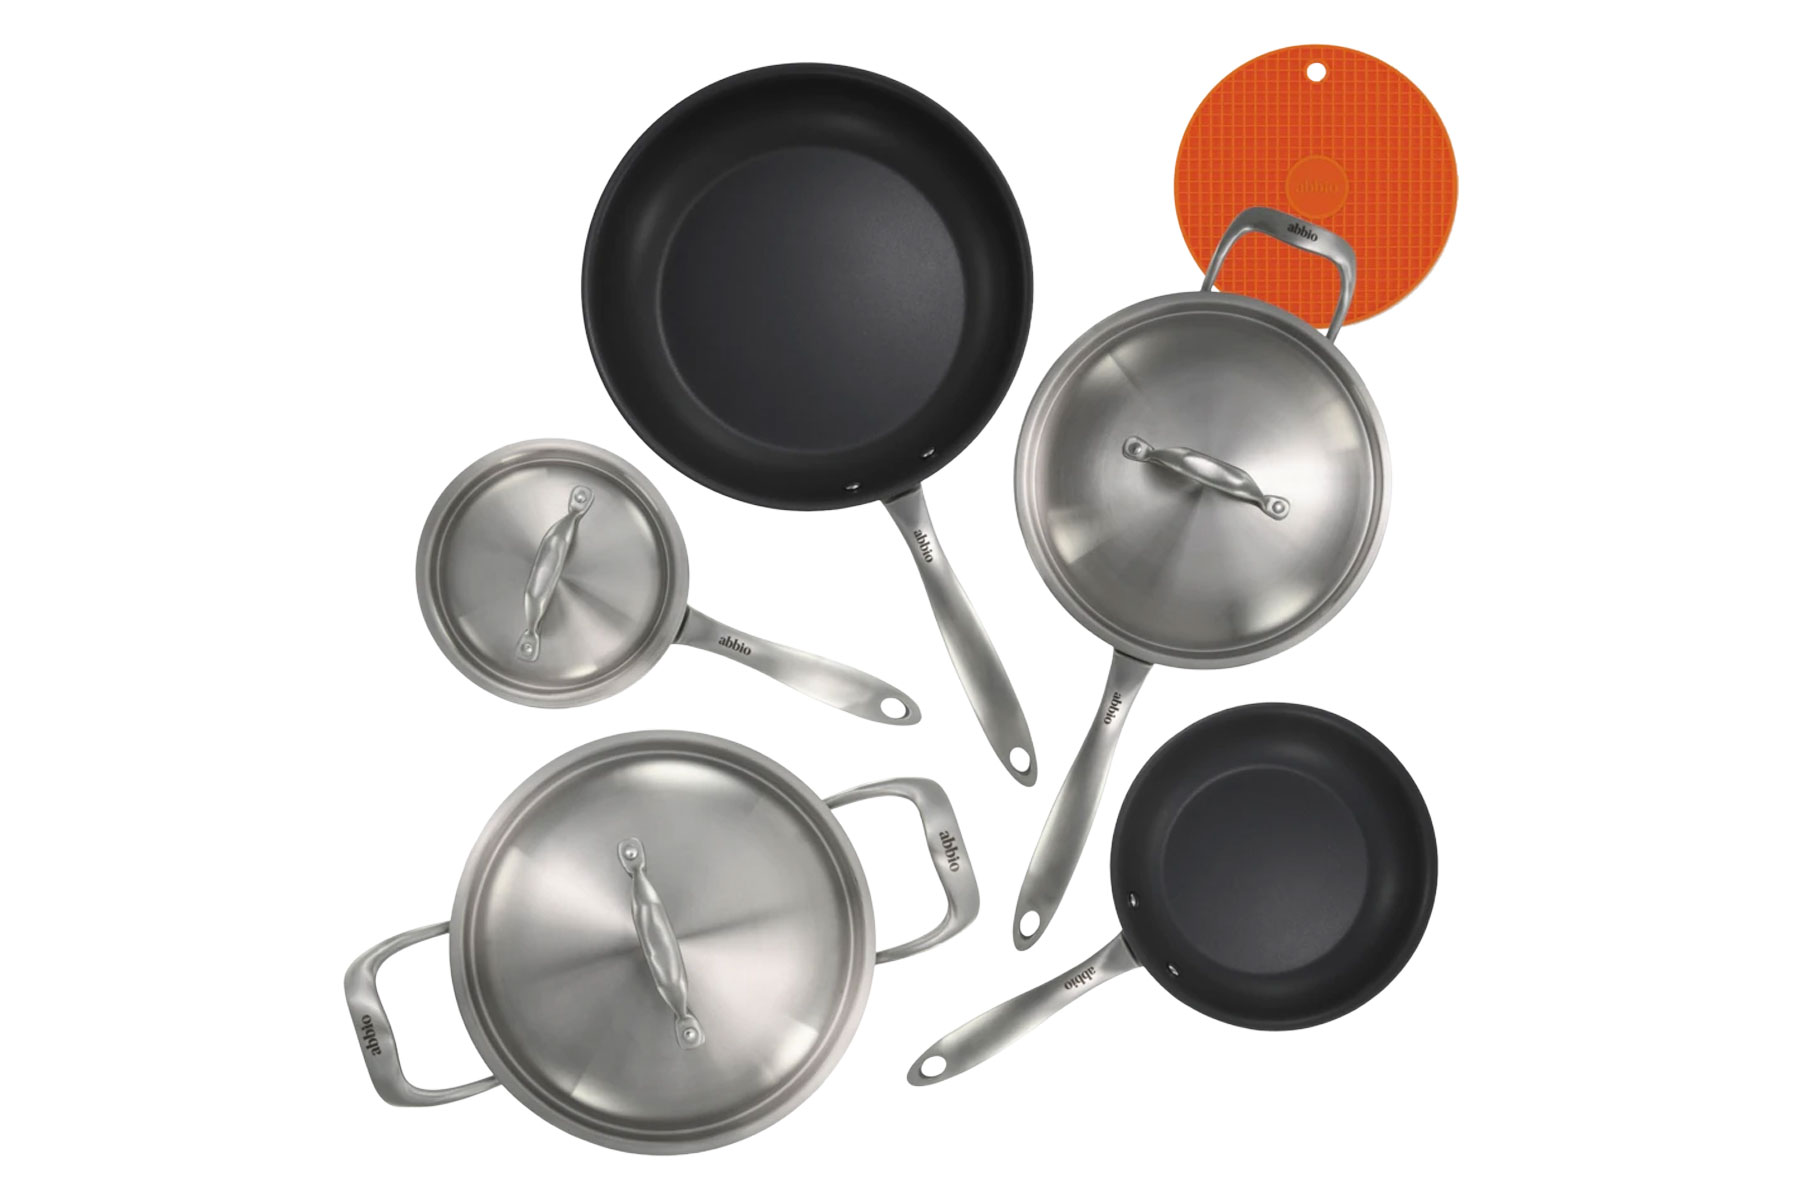 Stainless steel and cast iron cookware set